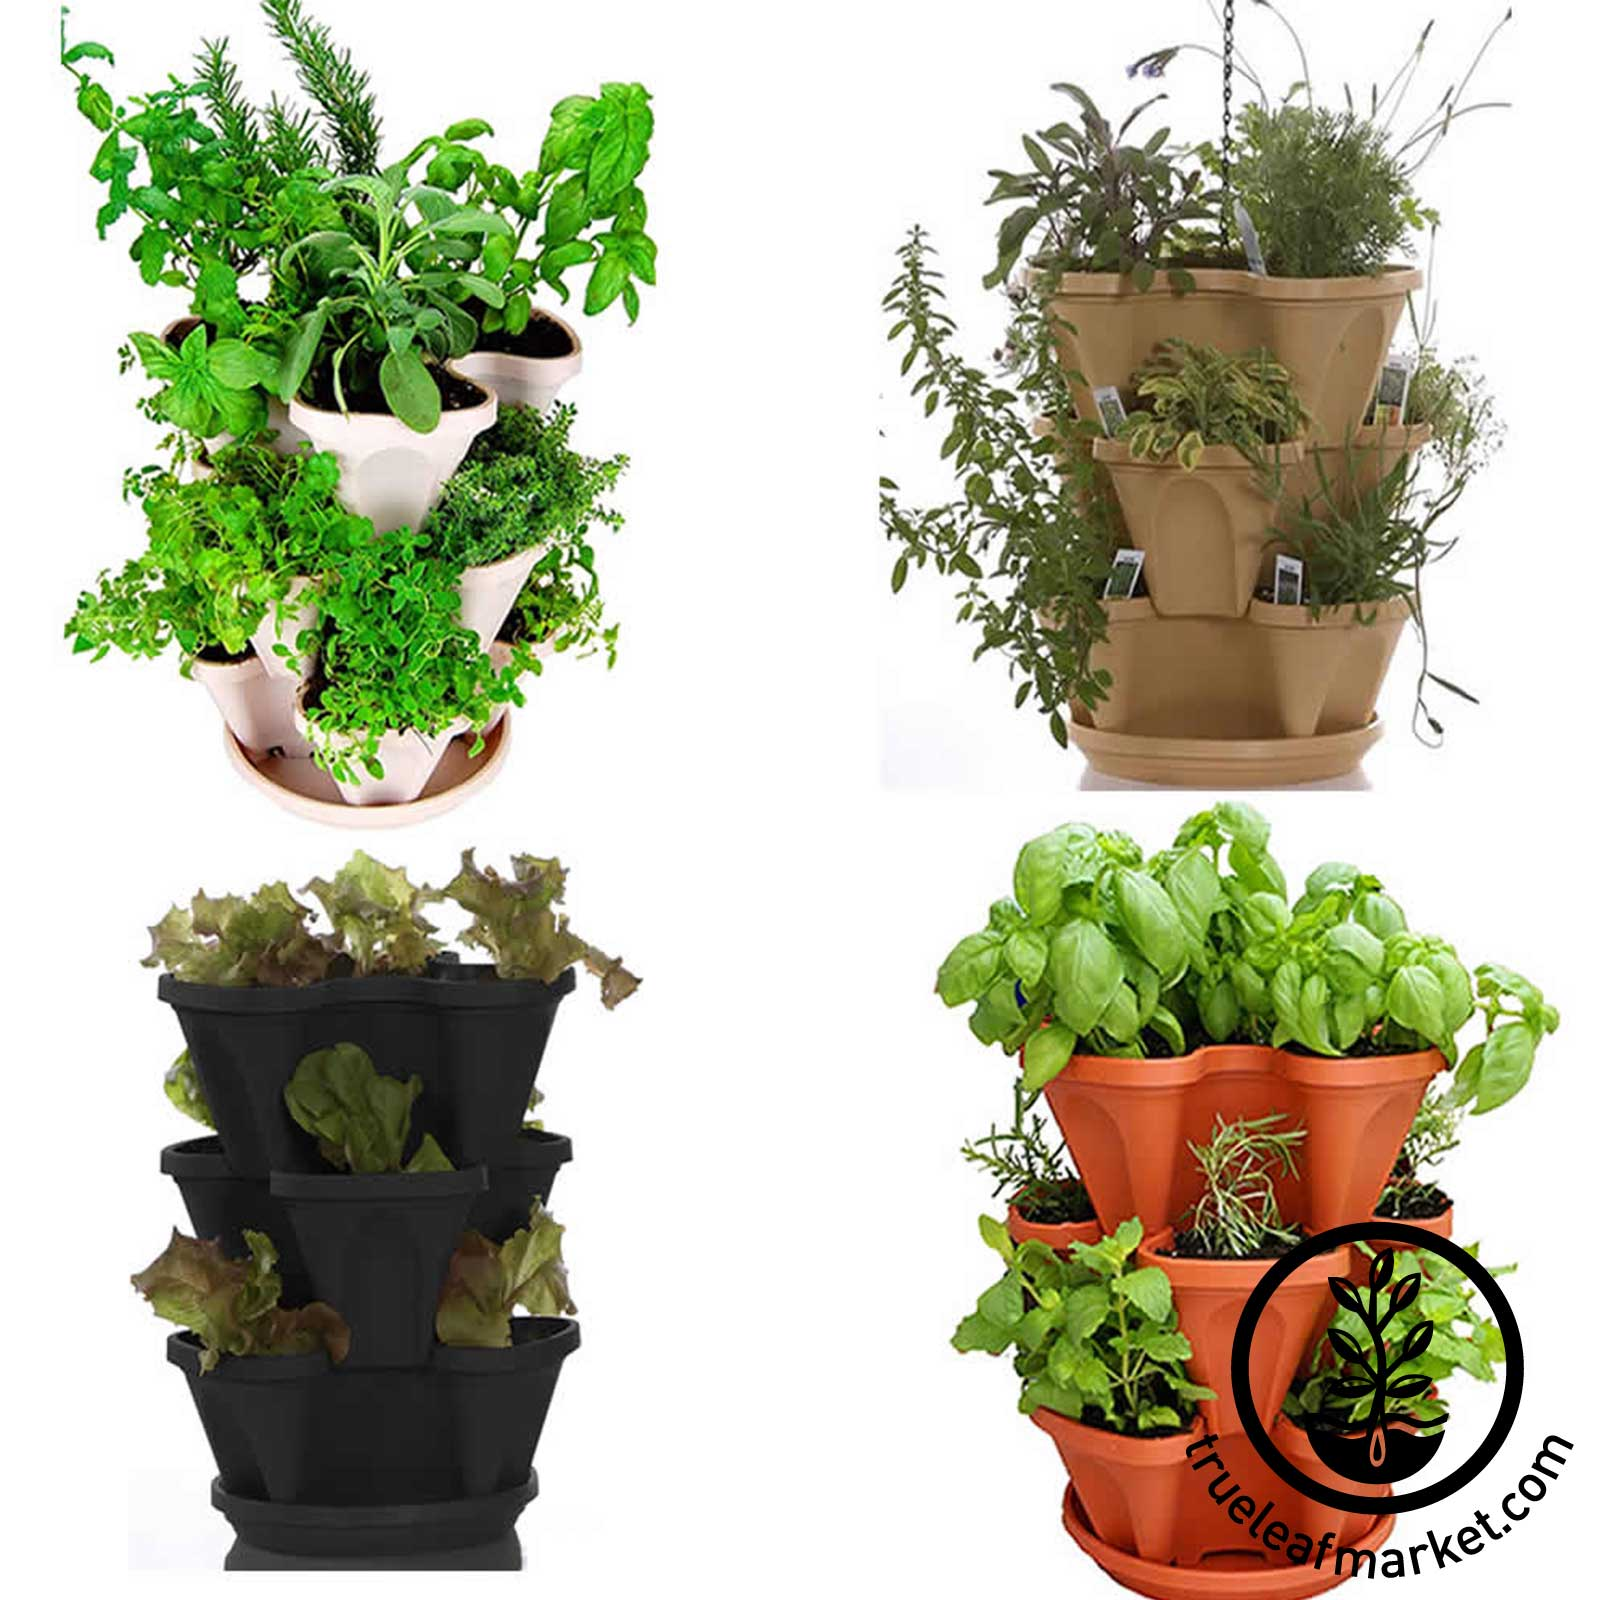 Herb Kits For Indoors: Stack & Grow Garden Planter